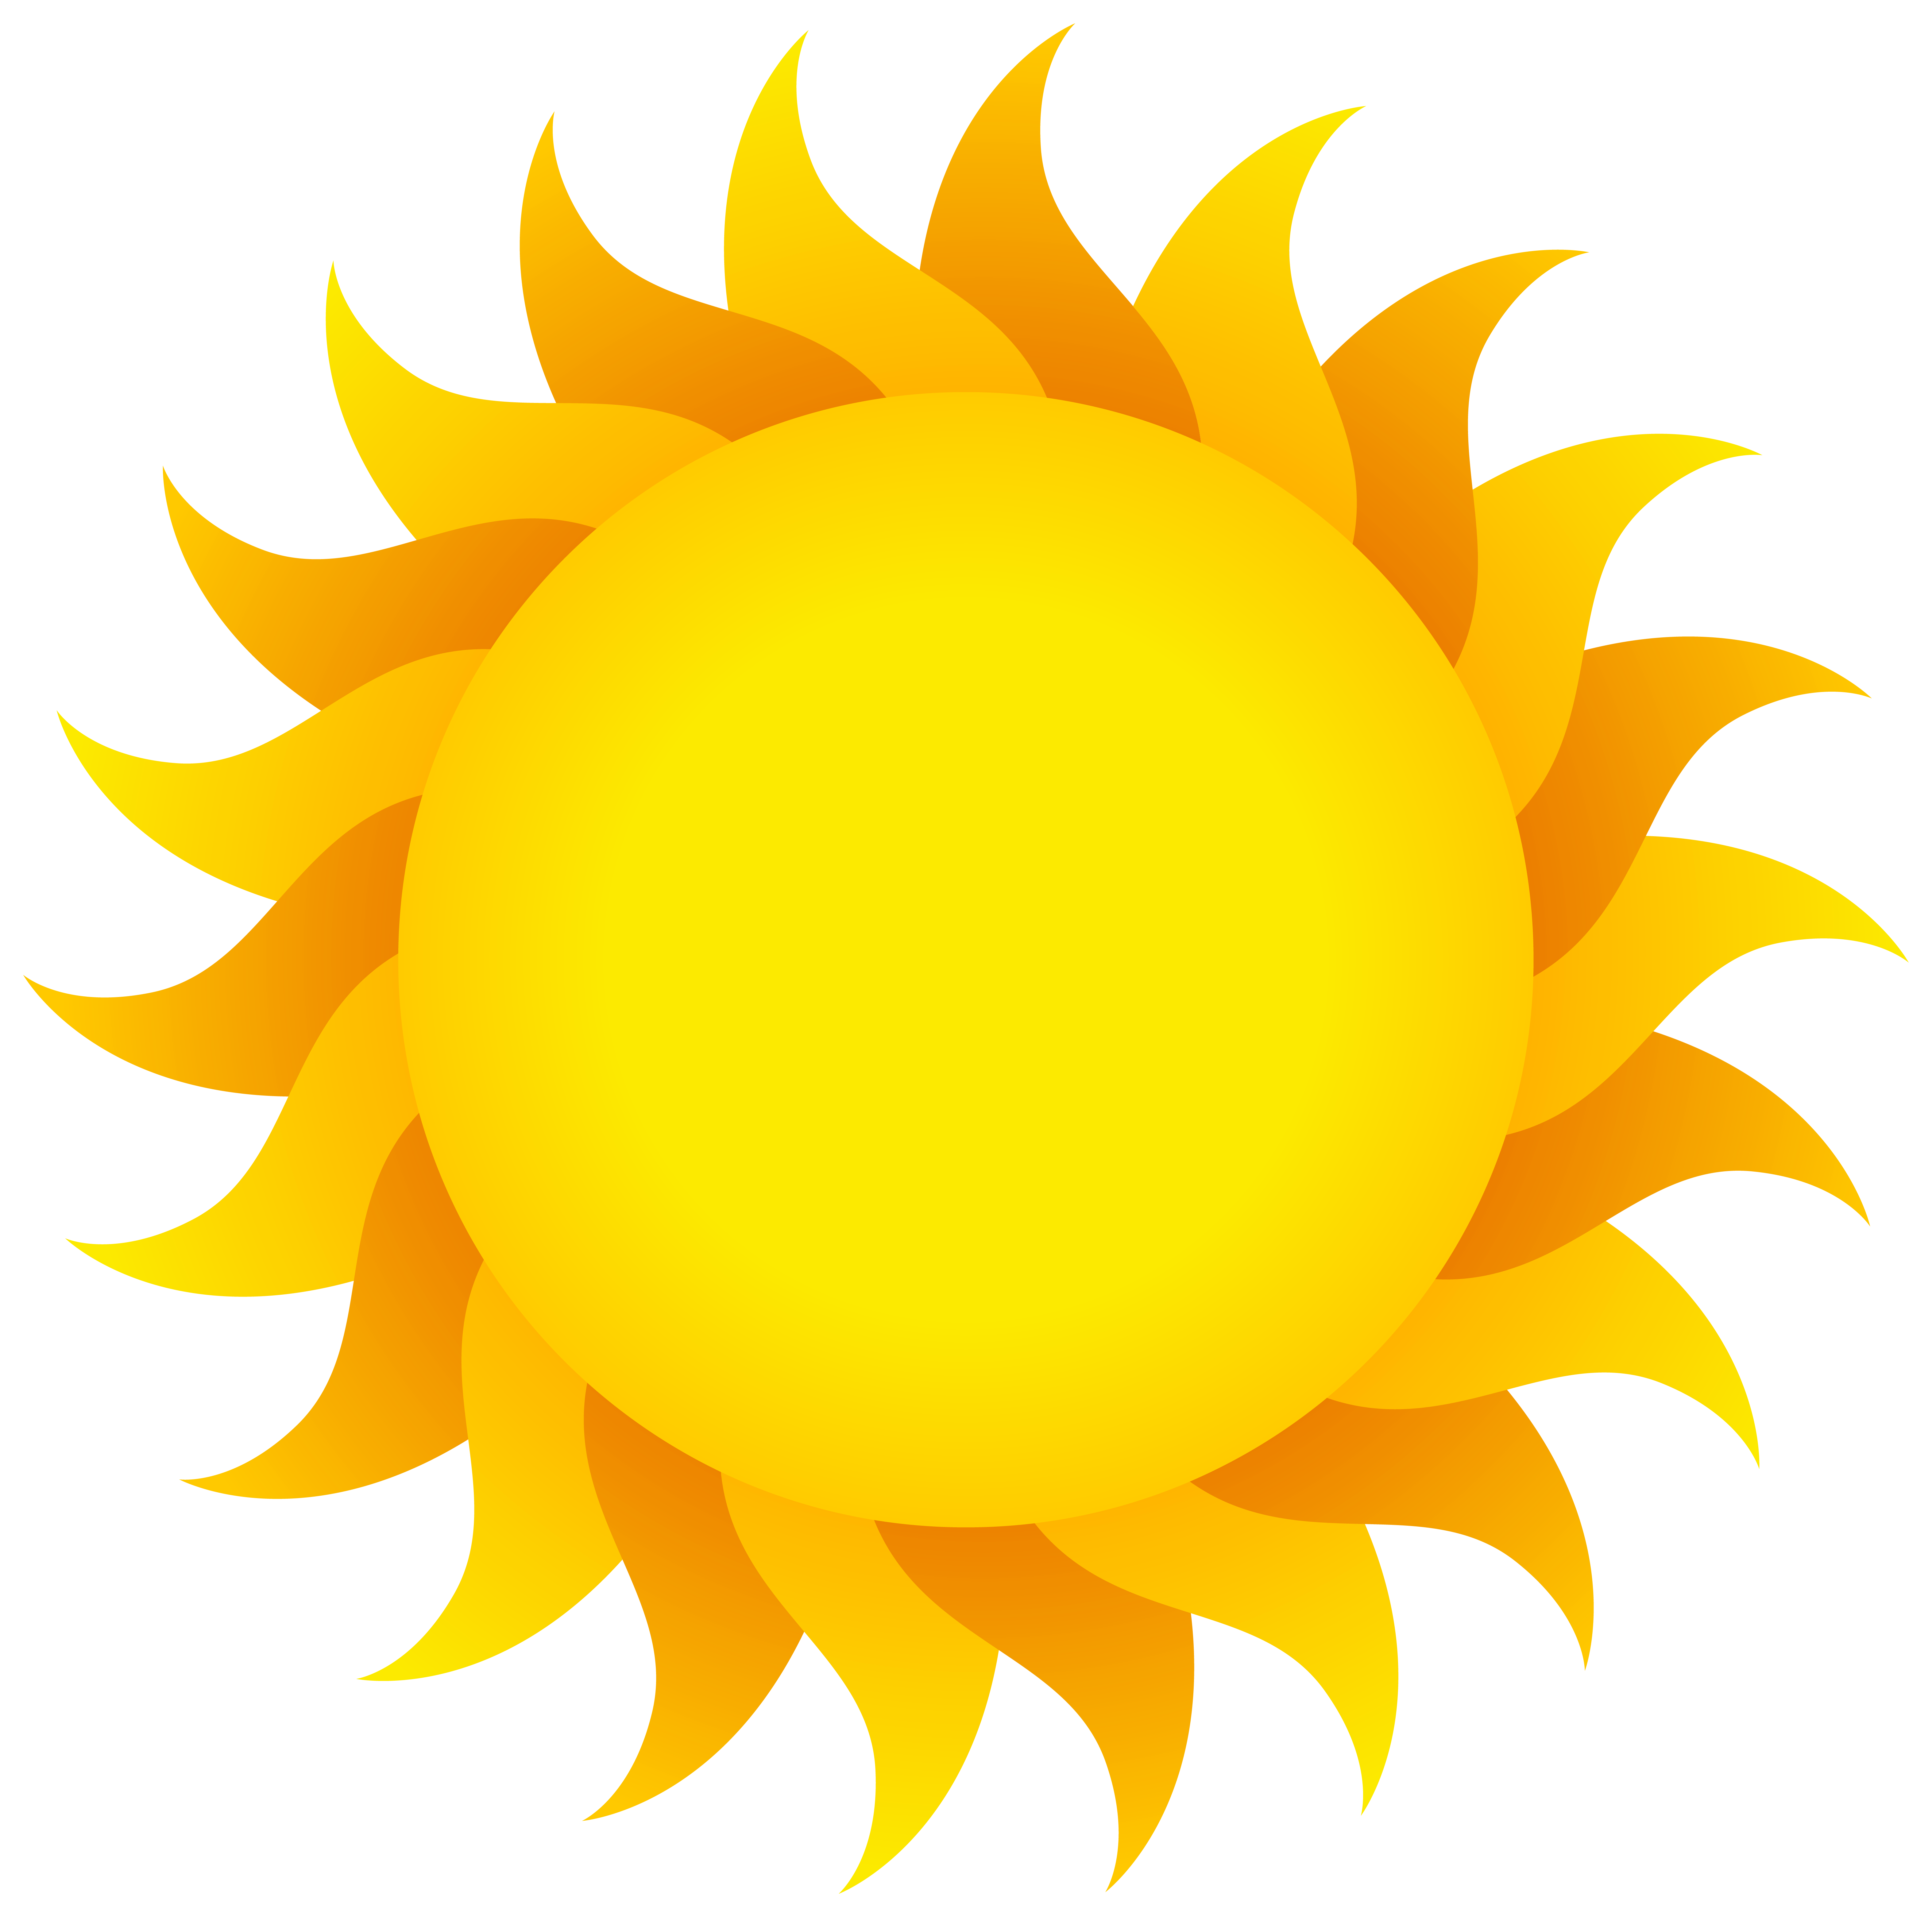 Sun PNG Transparent Background - 137184